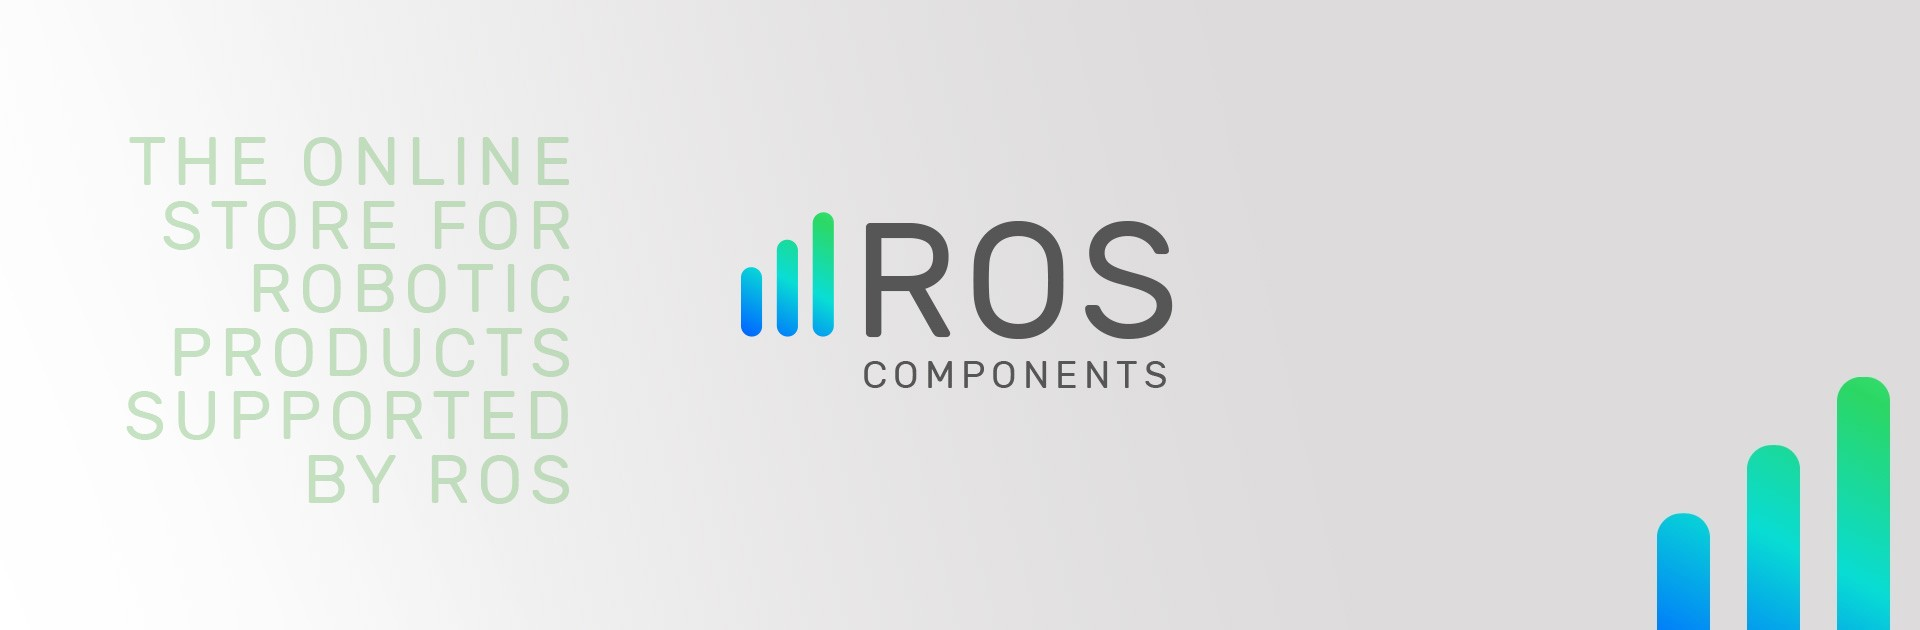 Online store for robotic products supported by ROS - ROS Components